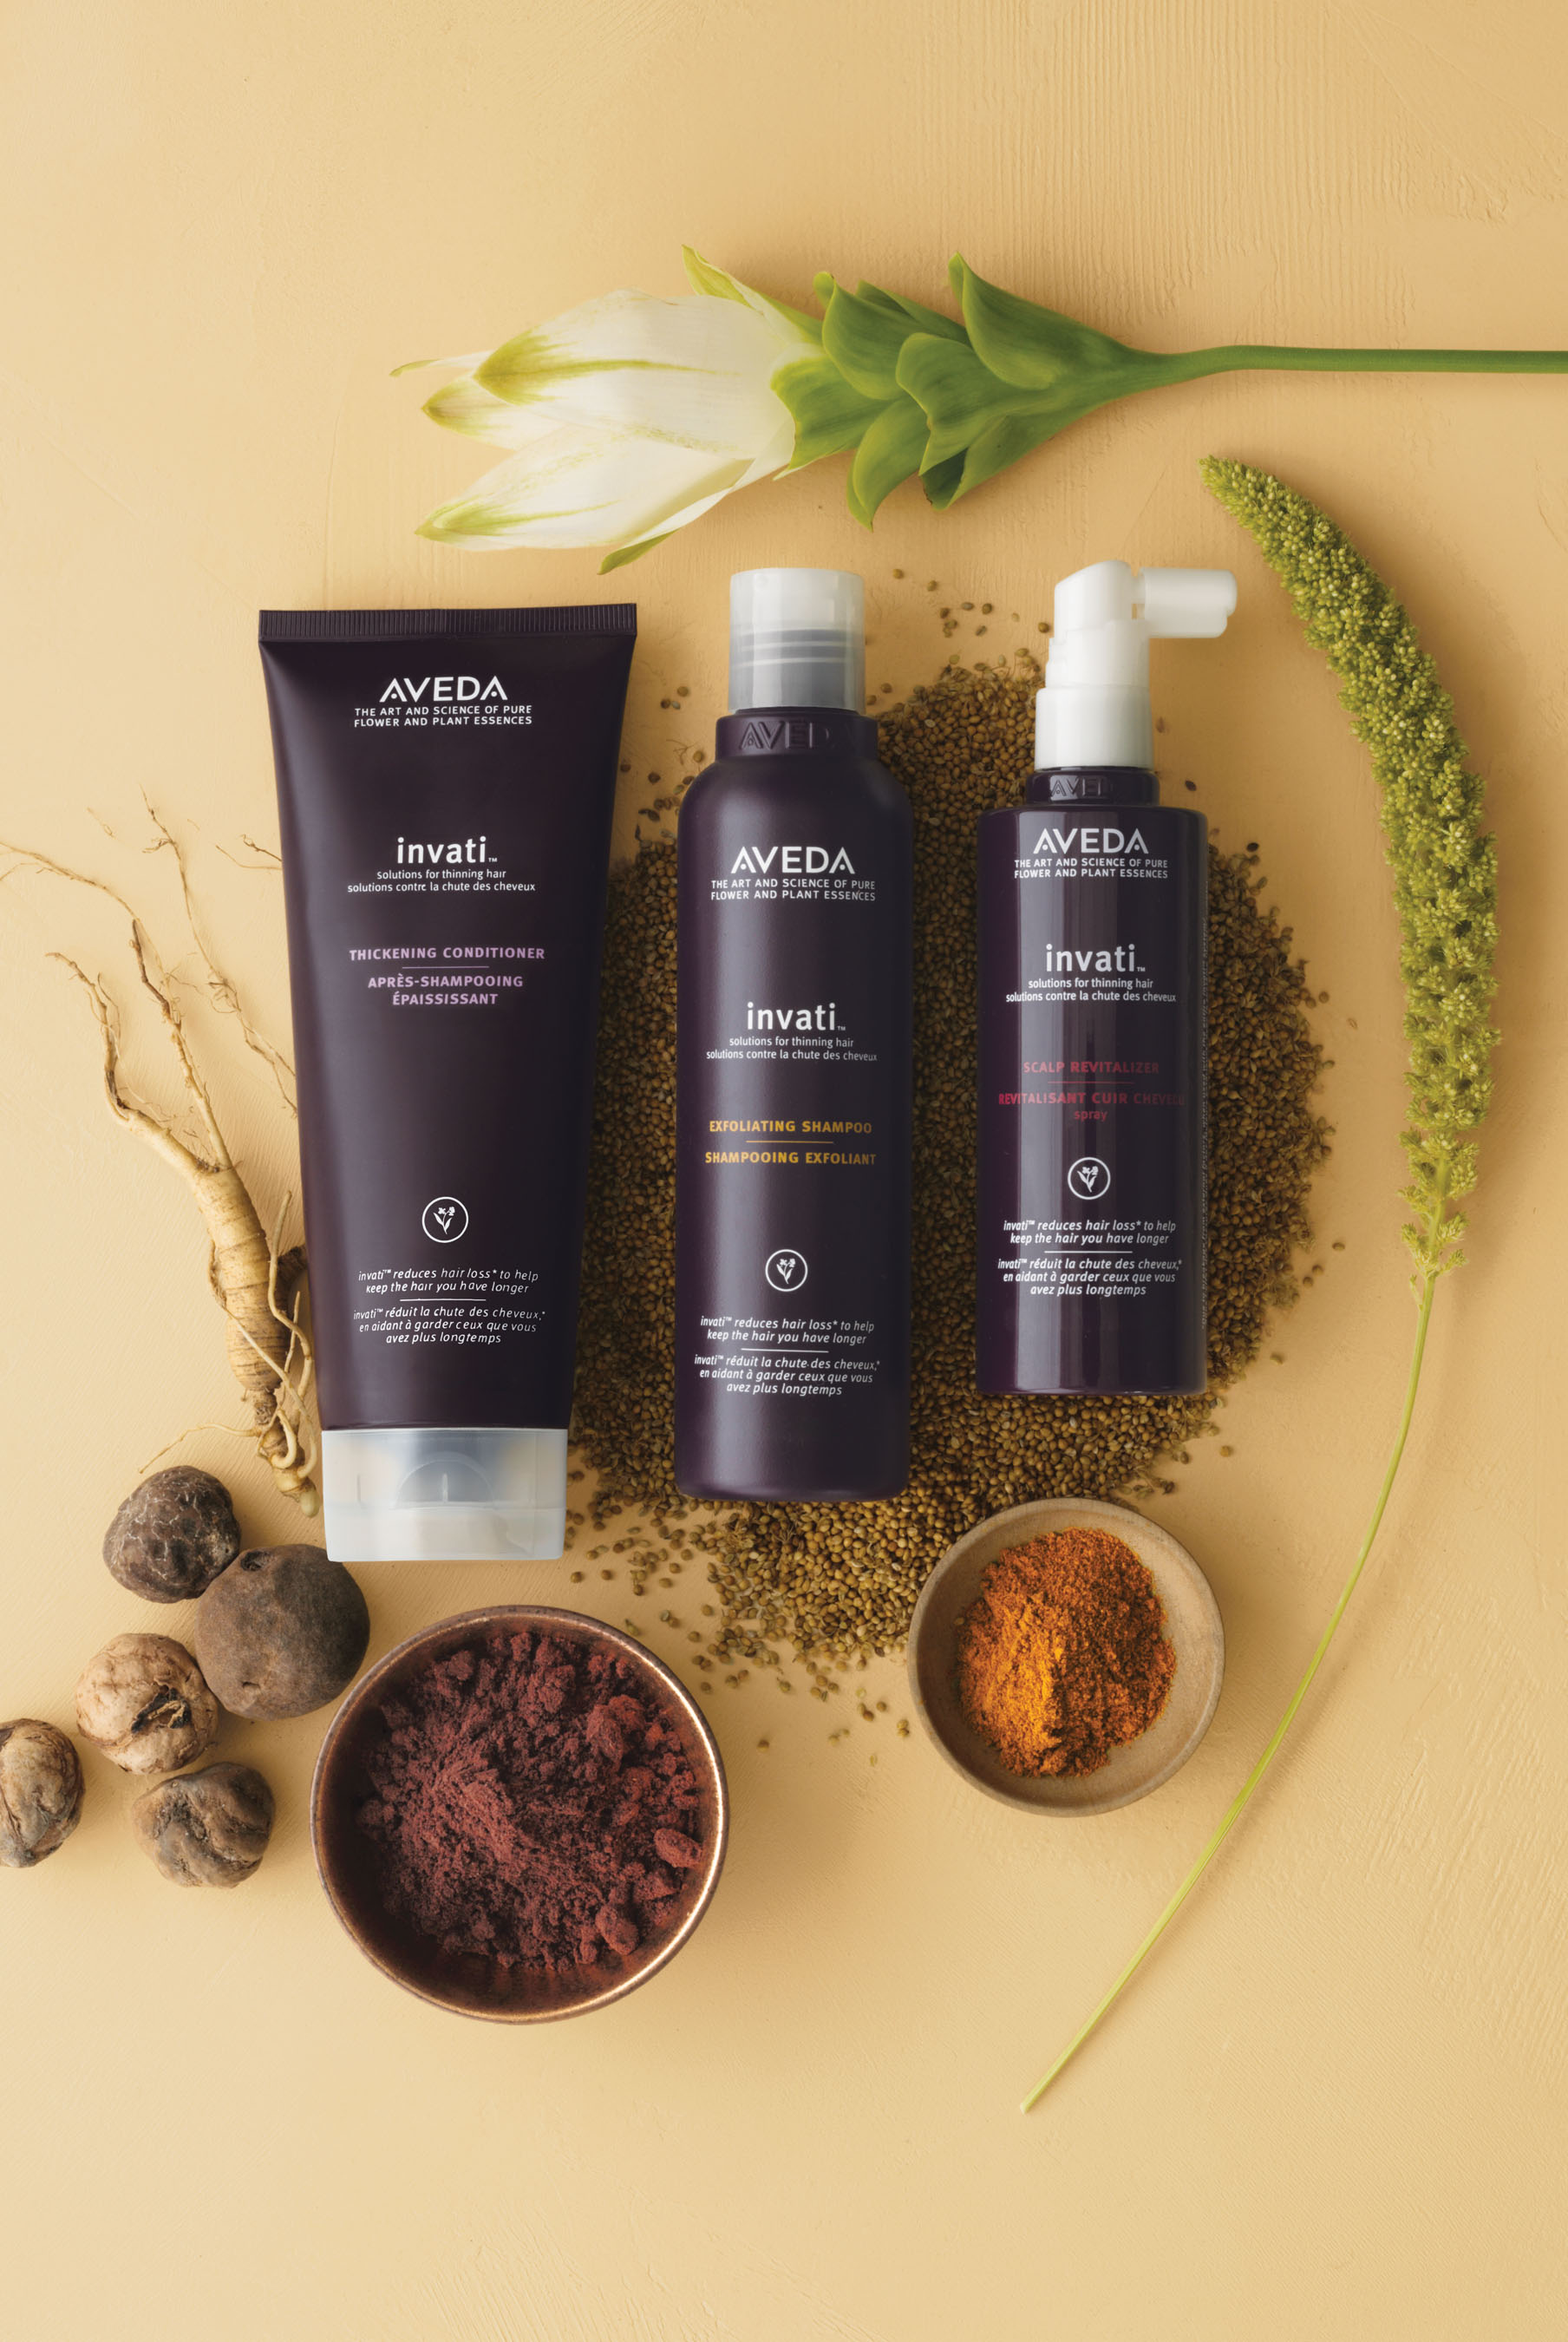 Image (c) Aveda Corporation